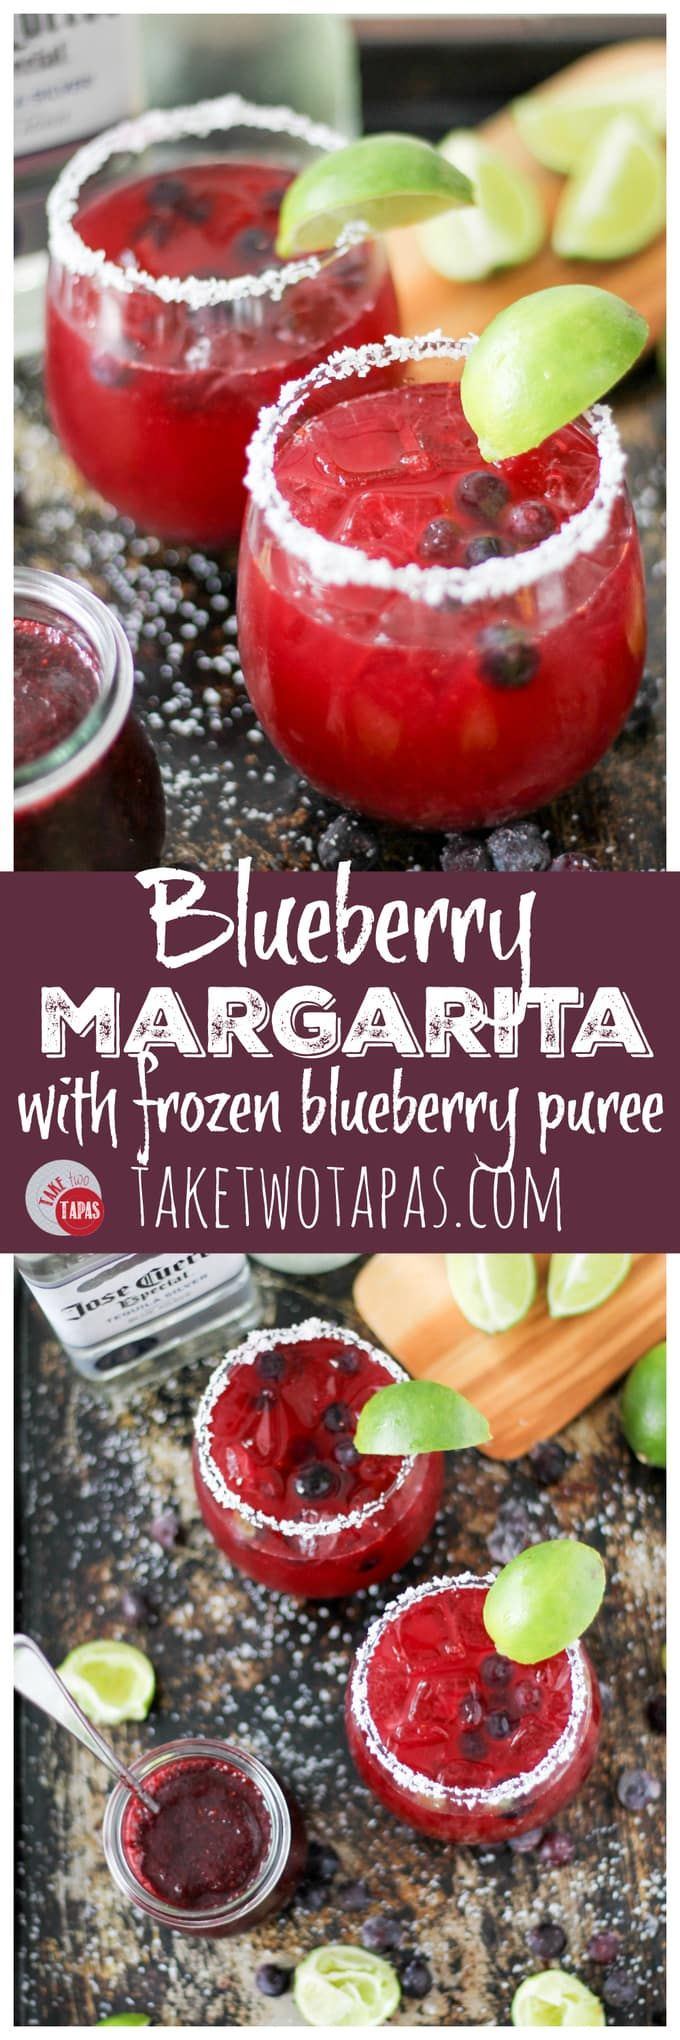 Blueberry Margaritas For A Cool Cocktail Blueberry Margarita Recipe Take Two Tapas Cocktails Blueberry Margarita Cocktail Recipes Easy Margarita Recipes